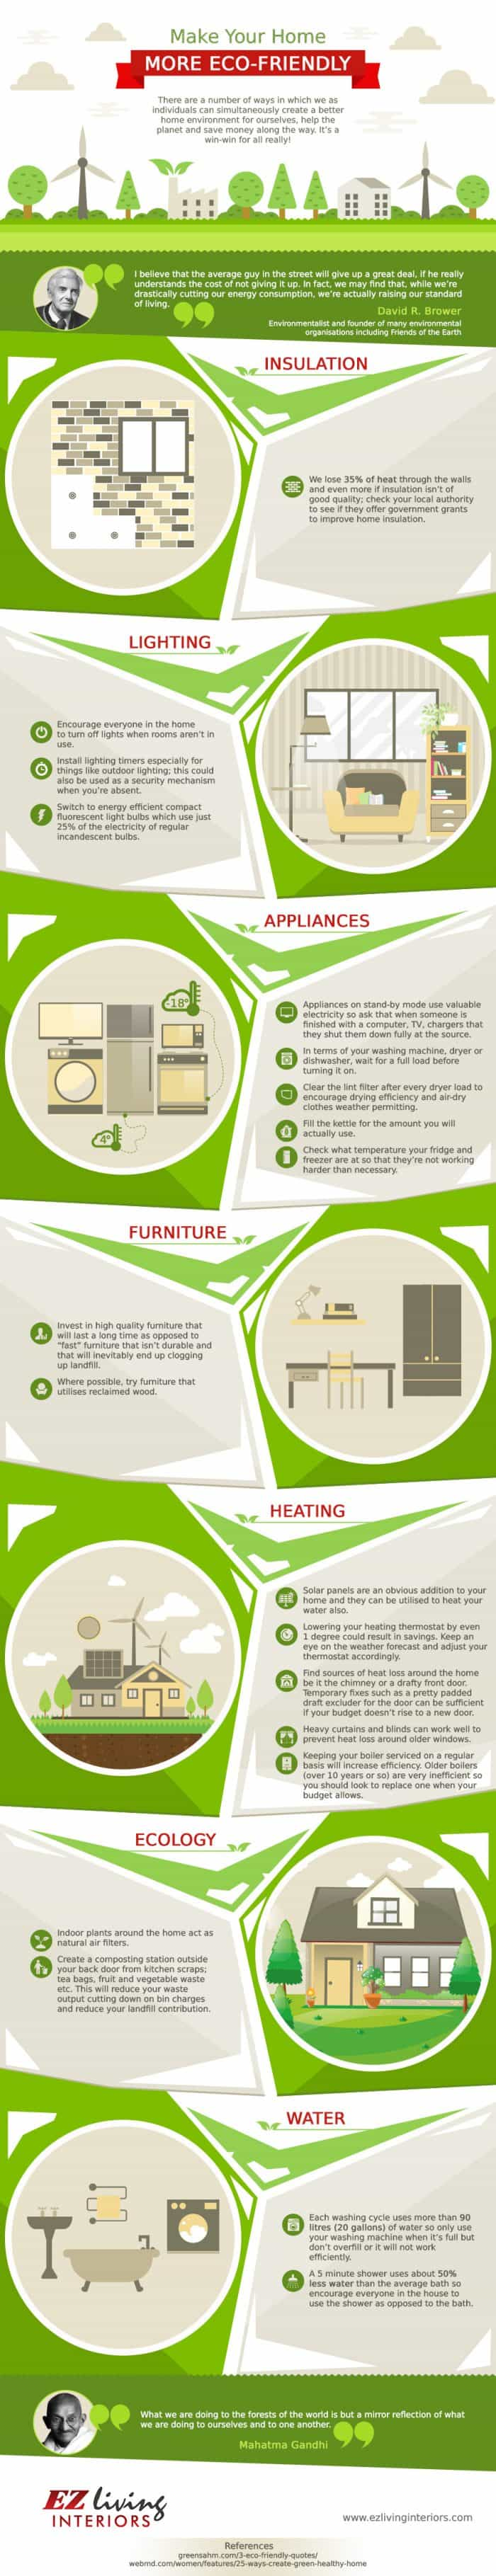 Make-Your-Home-More-Eco-Friendly-IE